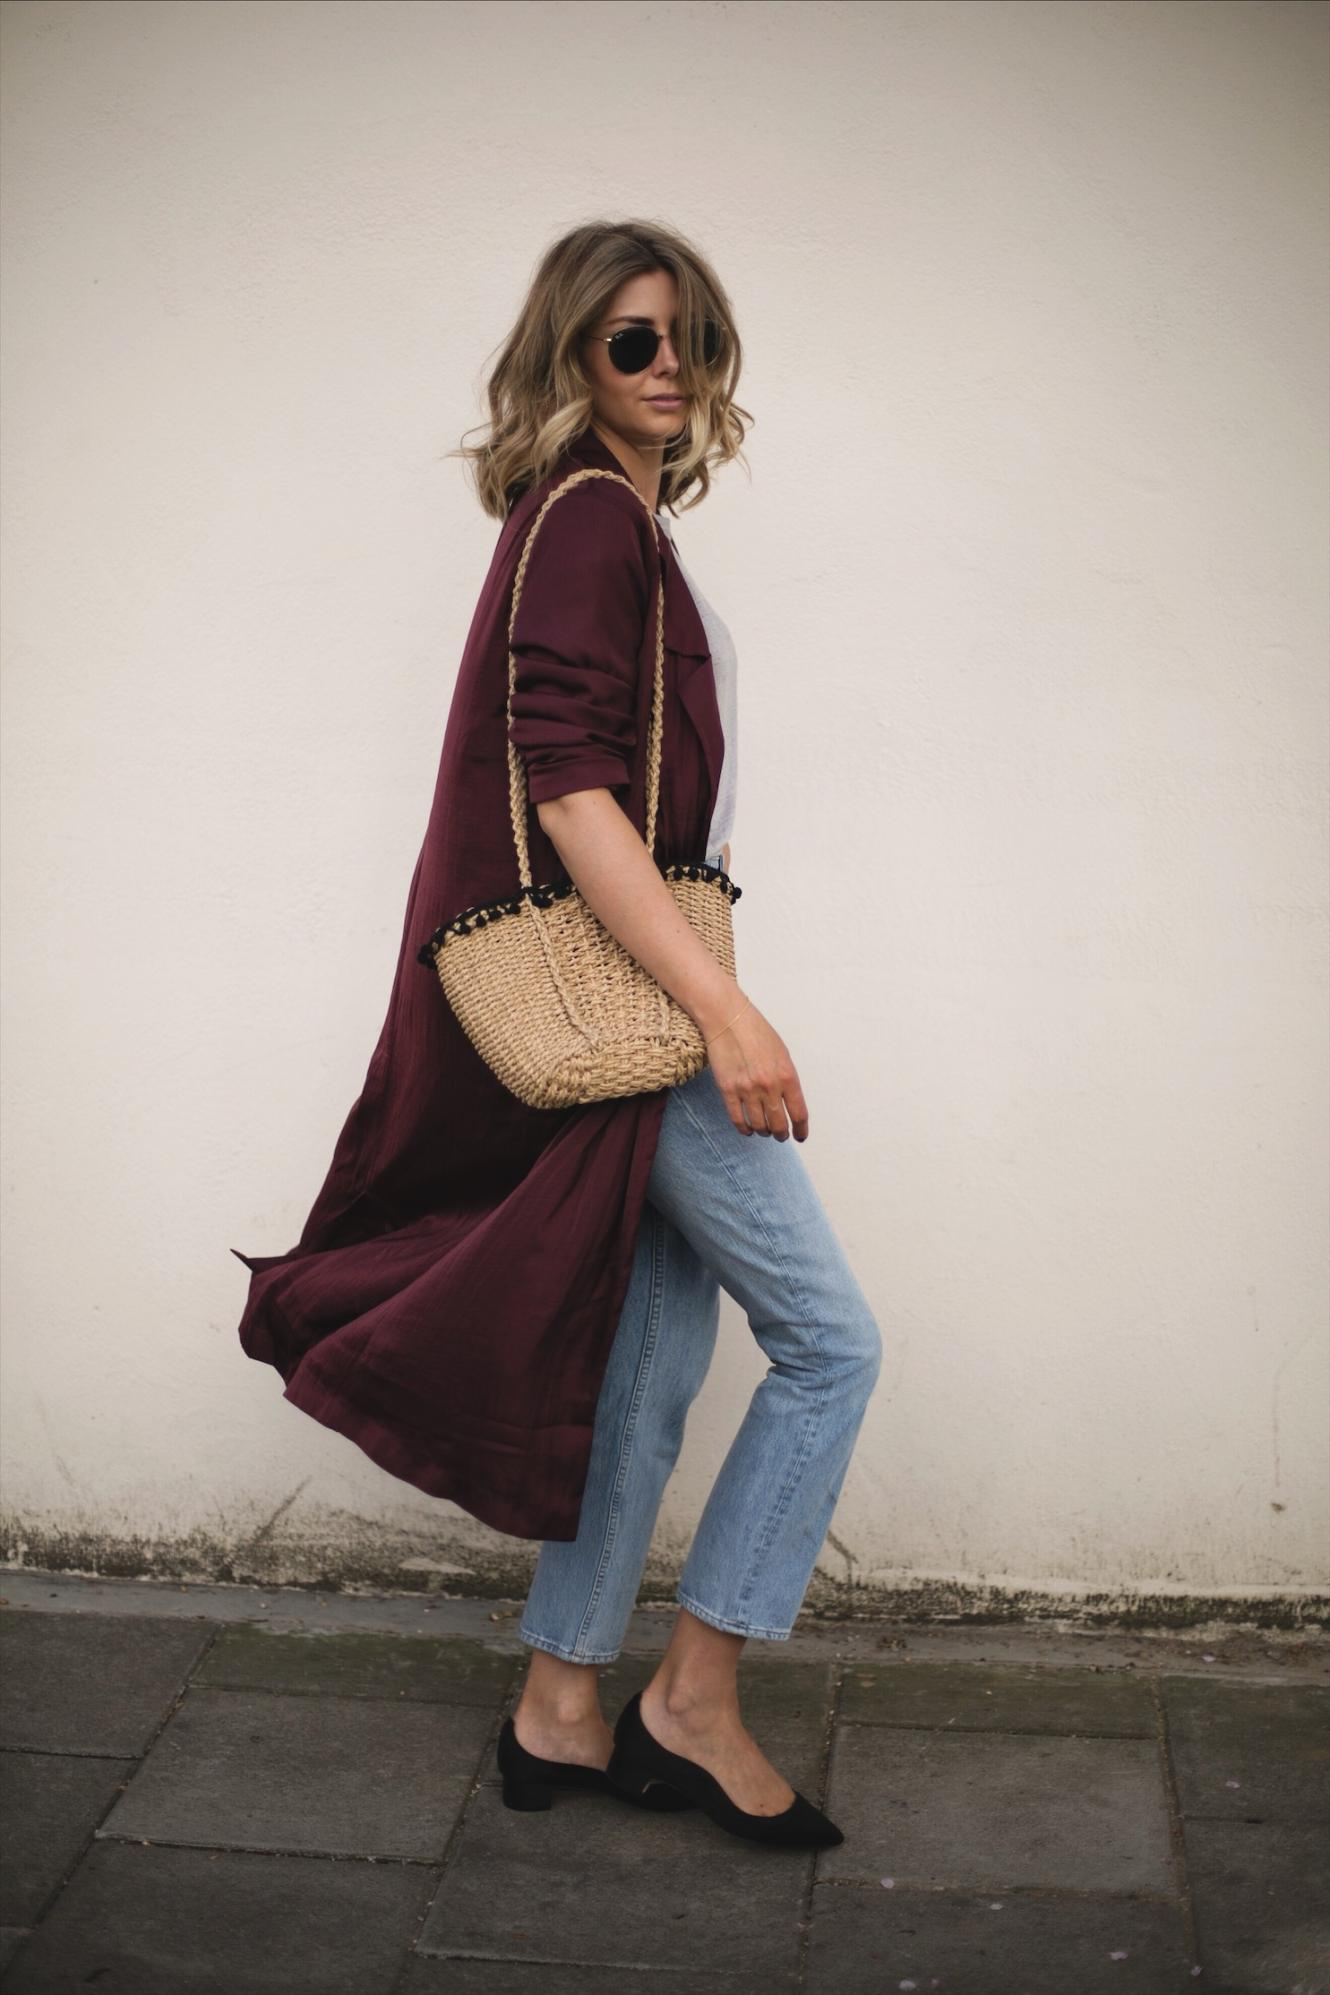 Emma Hill wears deep purple wine silky duster jacket kimono, straw basket bag with pom pom detail, grey t-shirt, cropped straight leg jeans, Dune x Rupert Sanderson low block heels, outfit ideas for Spring